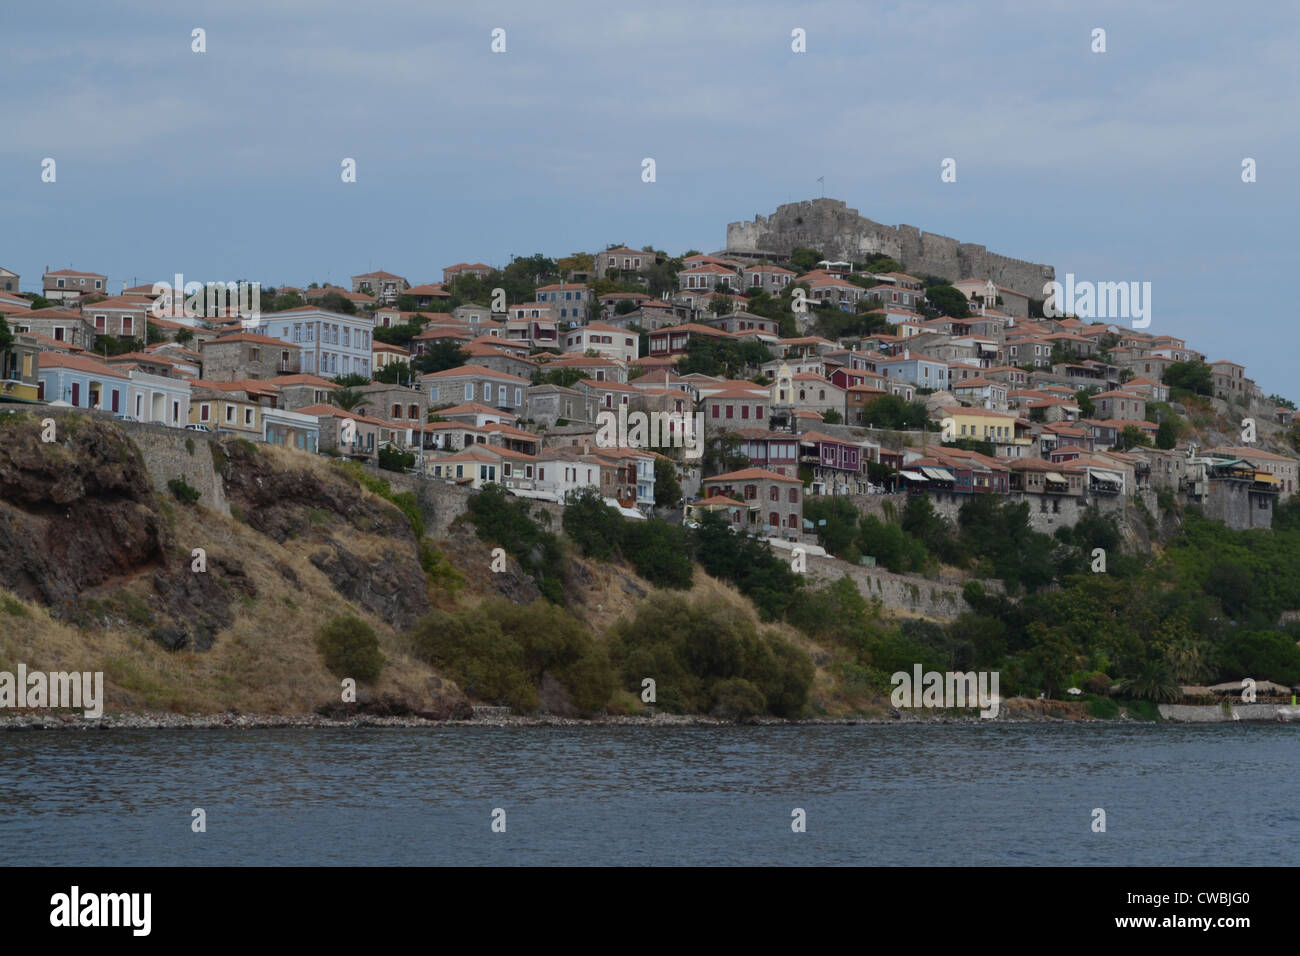 A view of Molyvos(also called Mythimna), a village on the Greek island Lesvos. - Stock Image